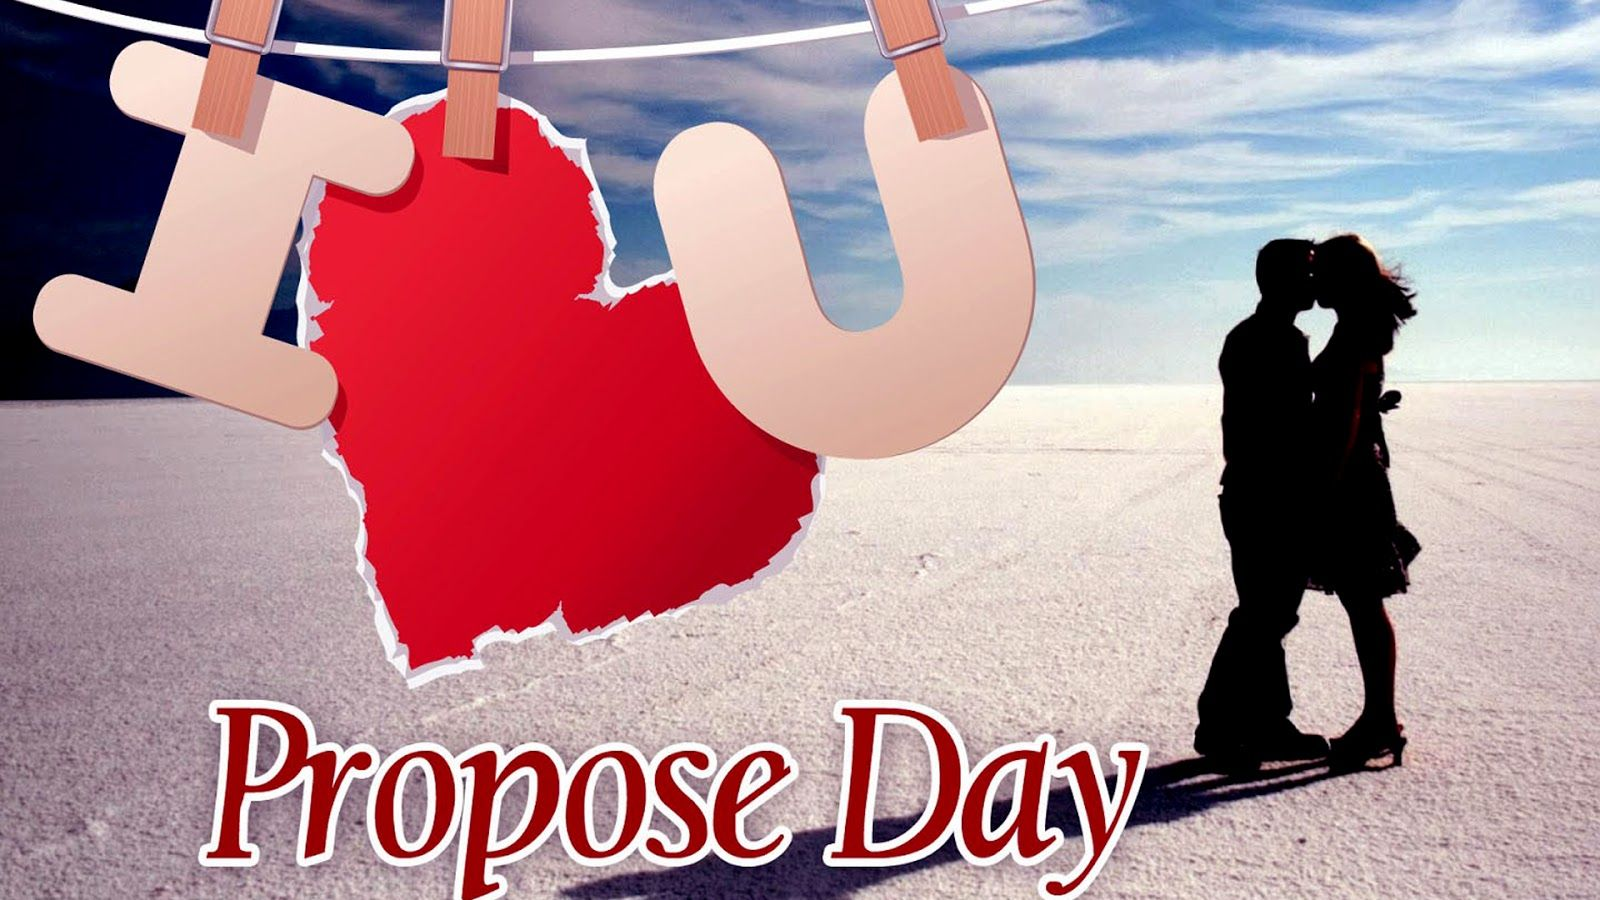 Happy Propose Day Wallpapers Hd Download Free 1080p Happy Propose Day Propose Day Quotes Propose Day Images